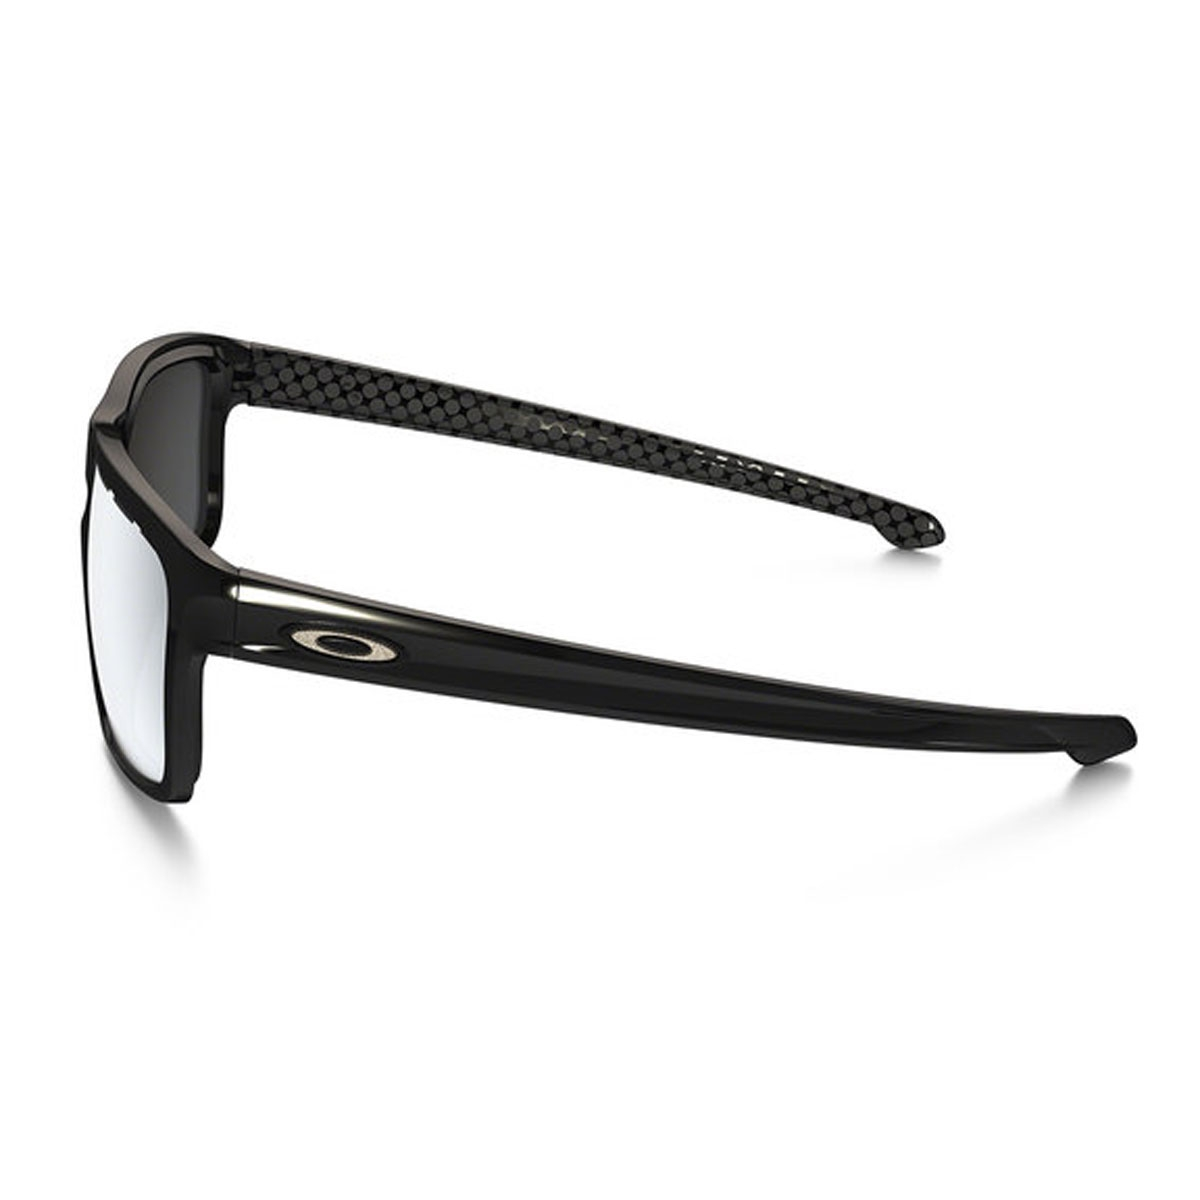 2e3b7a9194 ... Image of Oakley Sliver Men s Sunglasses - Polished Black Frames Chrome  Iridium Vented Len ...